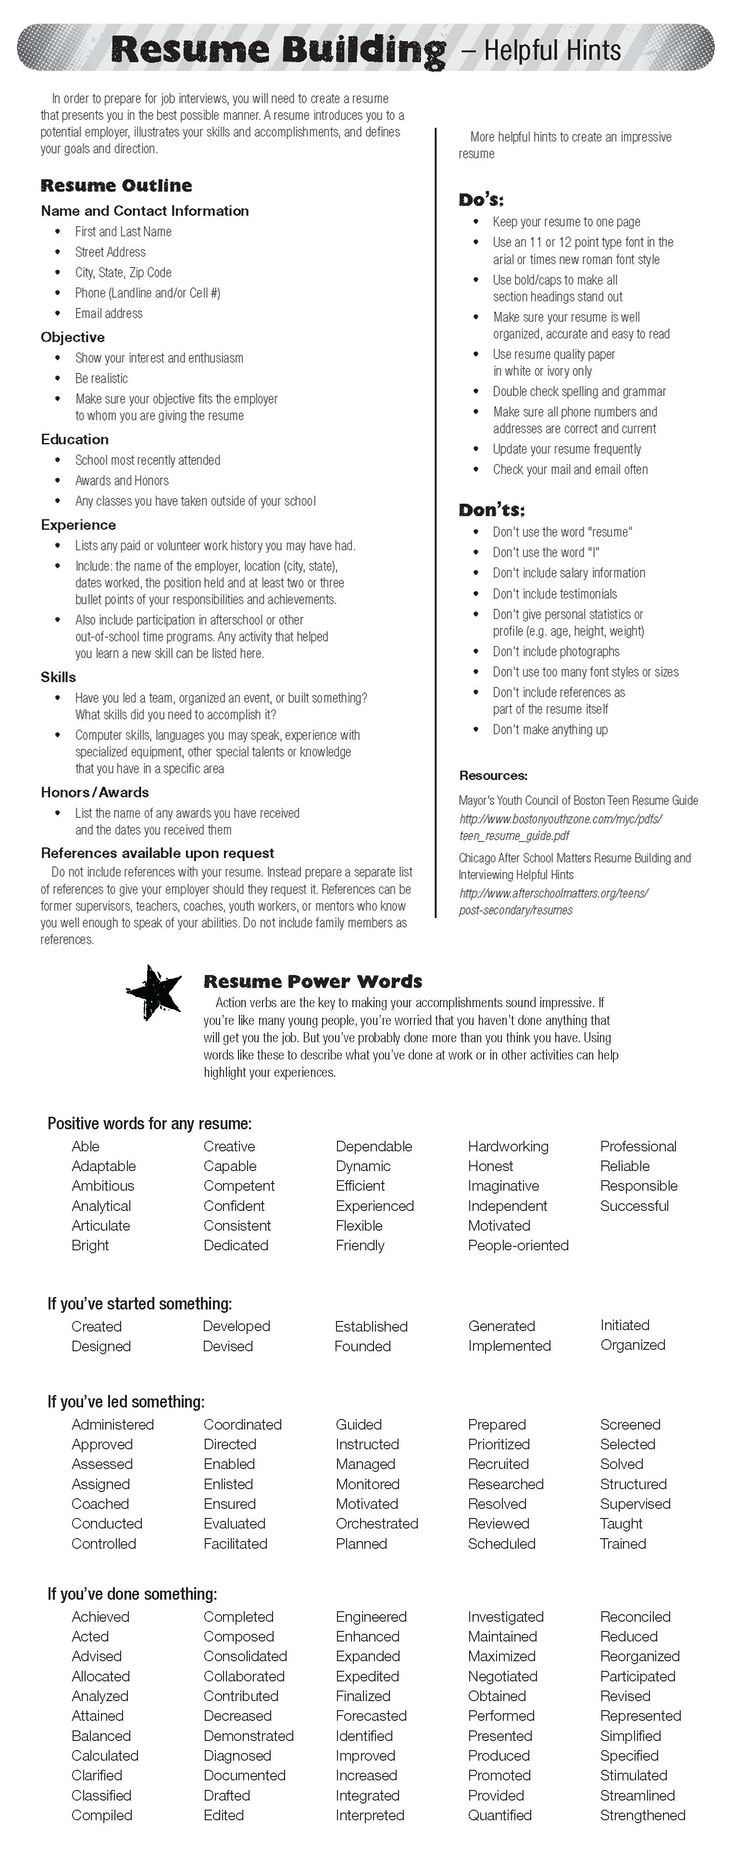 Opposenewapstandardsus  Personable  Ideas About Resume On Pinterest  Cv Format Resume Cv And  With Entrancing  Ideas About Resume On Pinterest  Cv Format Resume Cv And Resume Templates With Enchanting Basic Resume Samples Also Indesign Resume In Addition  Free Resume Builder And Retail Resume Sample As Well As Communications Resume Additionally Resume Builder Templates From Pinterestcom With Opposenewapstandardsus  Entrancing  Ideas About Resume On Pinterest  Cv Format Resume Cv And  With Enchanting  Ideas About Resume On Pinterest  Cv Format Resume Cv And Resume Templates And Personable Basic Resume Samples Also Indesign Resume In Addition  Free Resume Builder From Pinterestcom